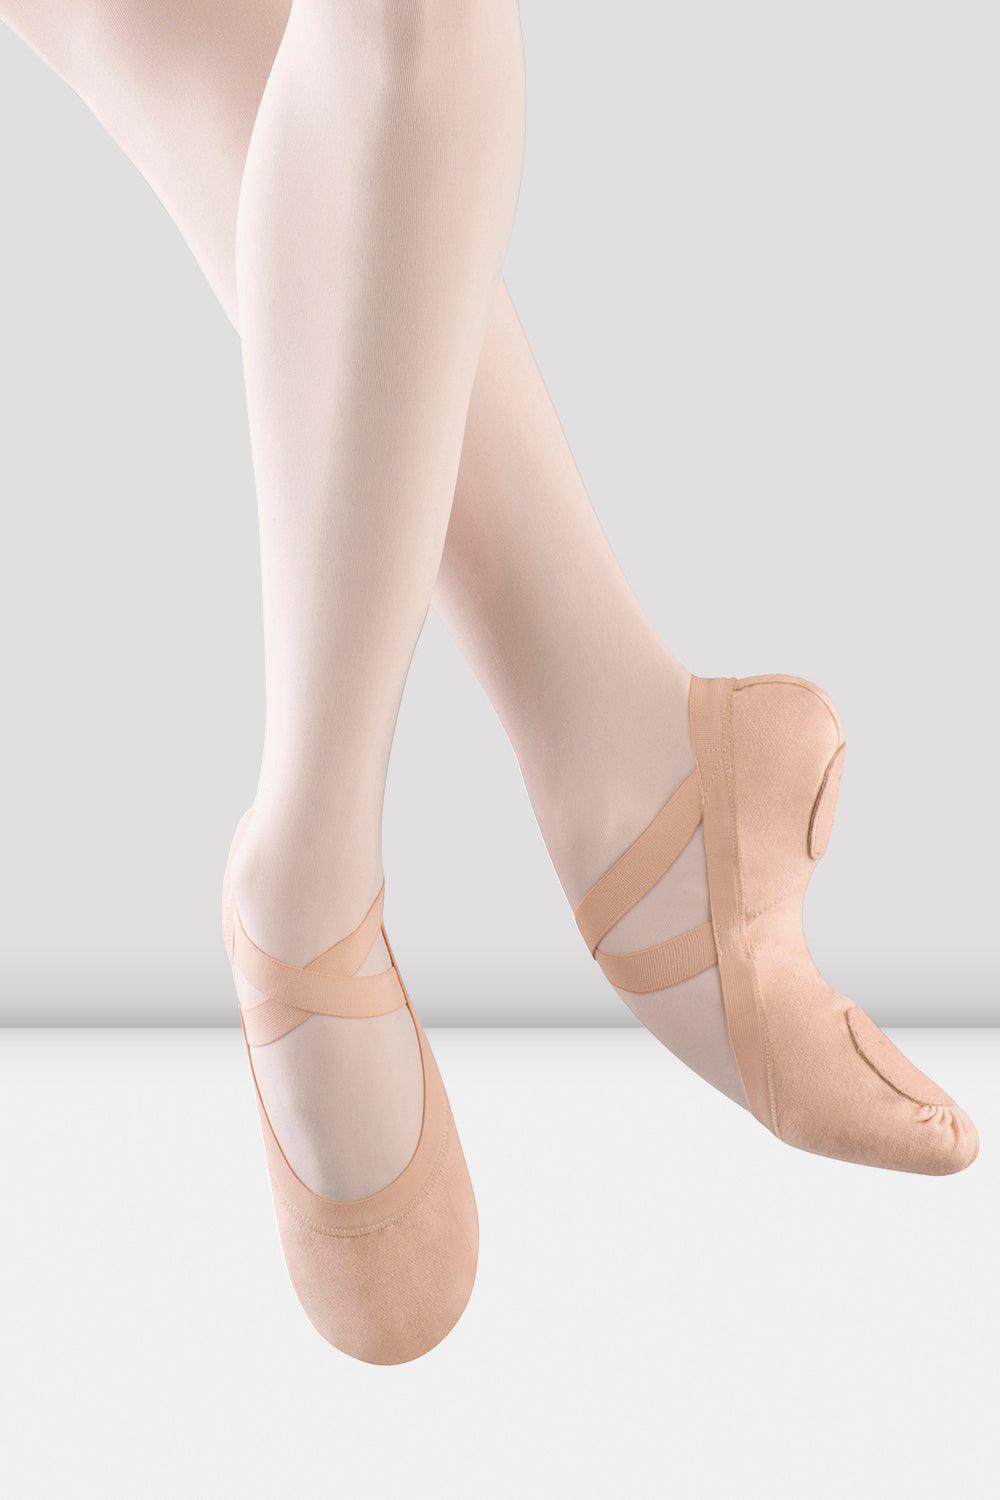 Girls Pro-Elastic Canvas Ballet Shoes - BLOCH US